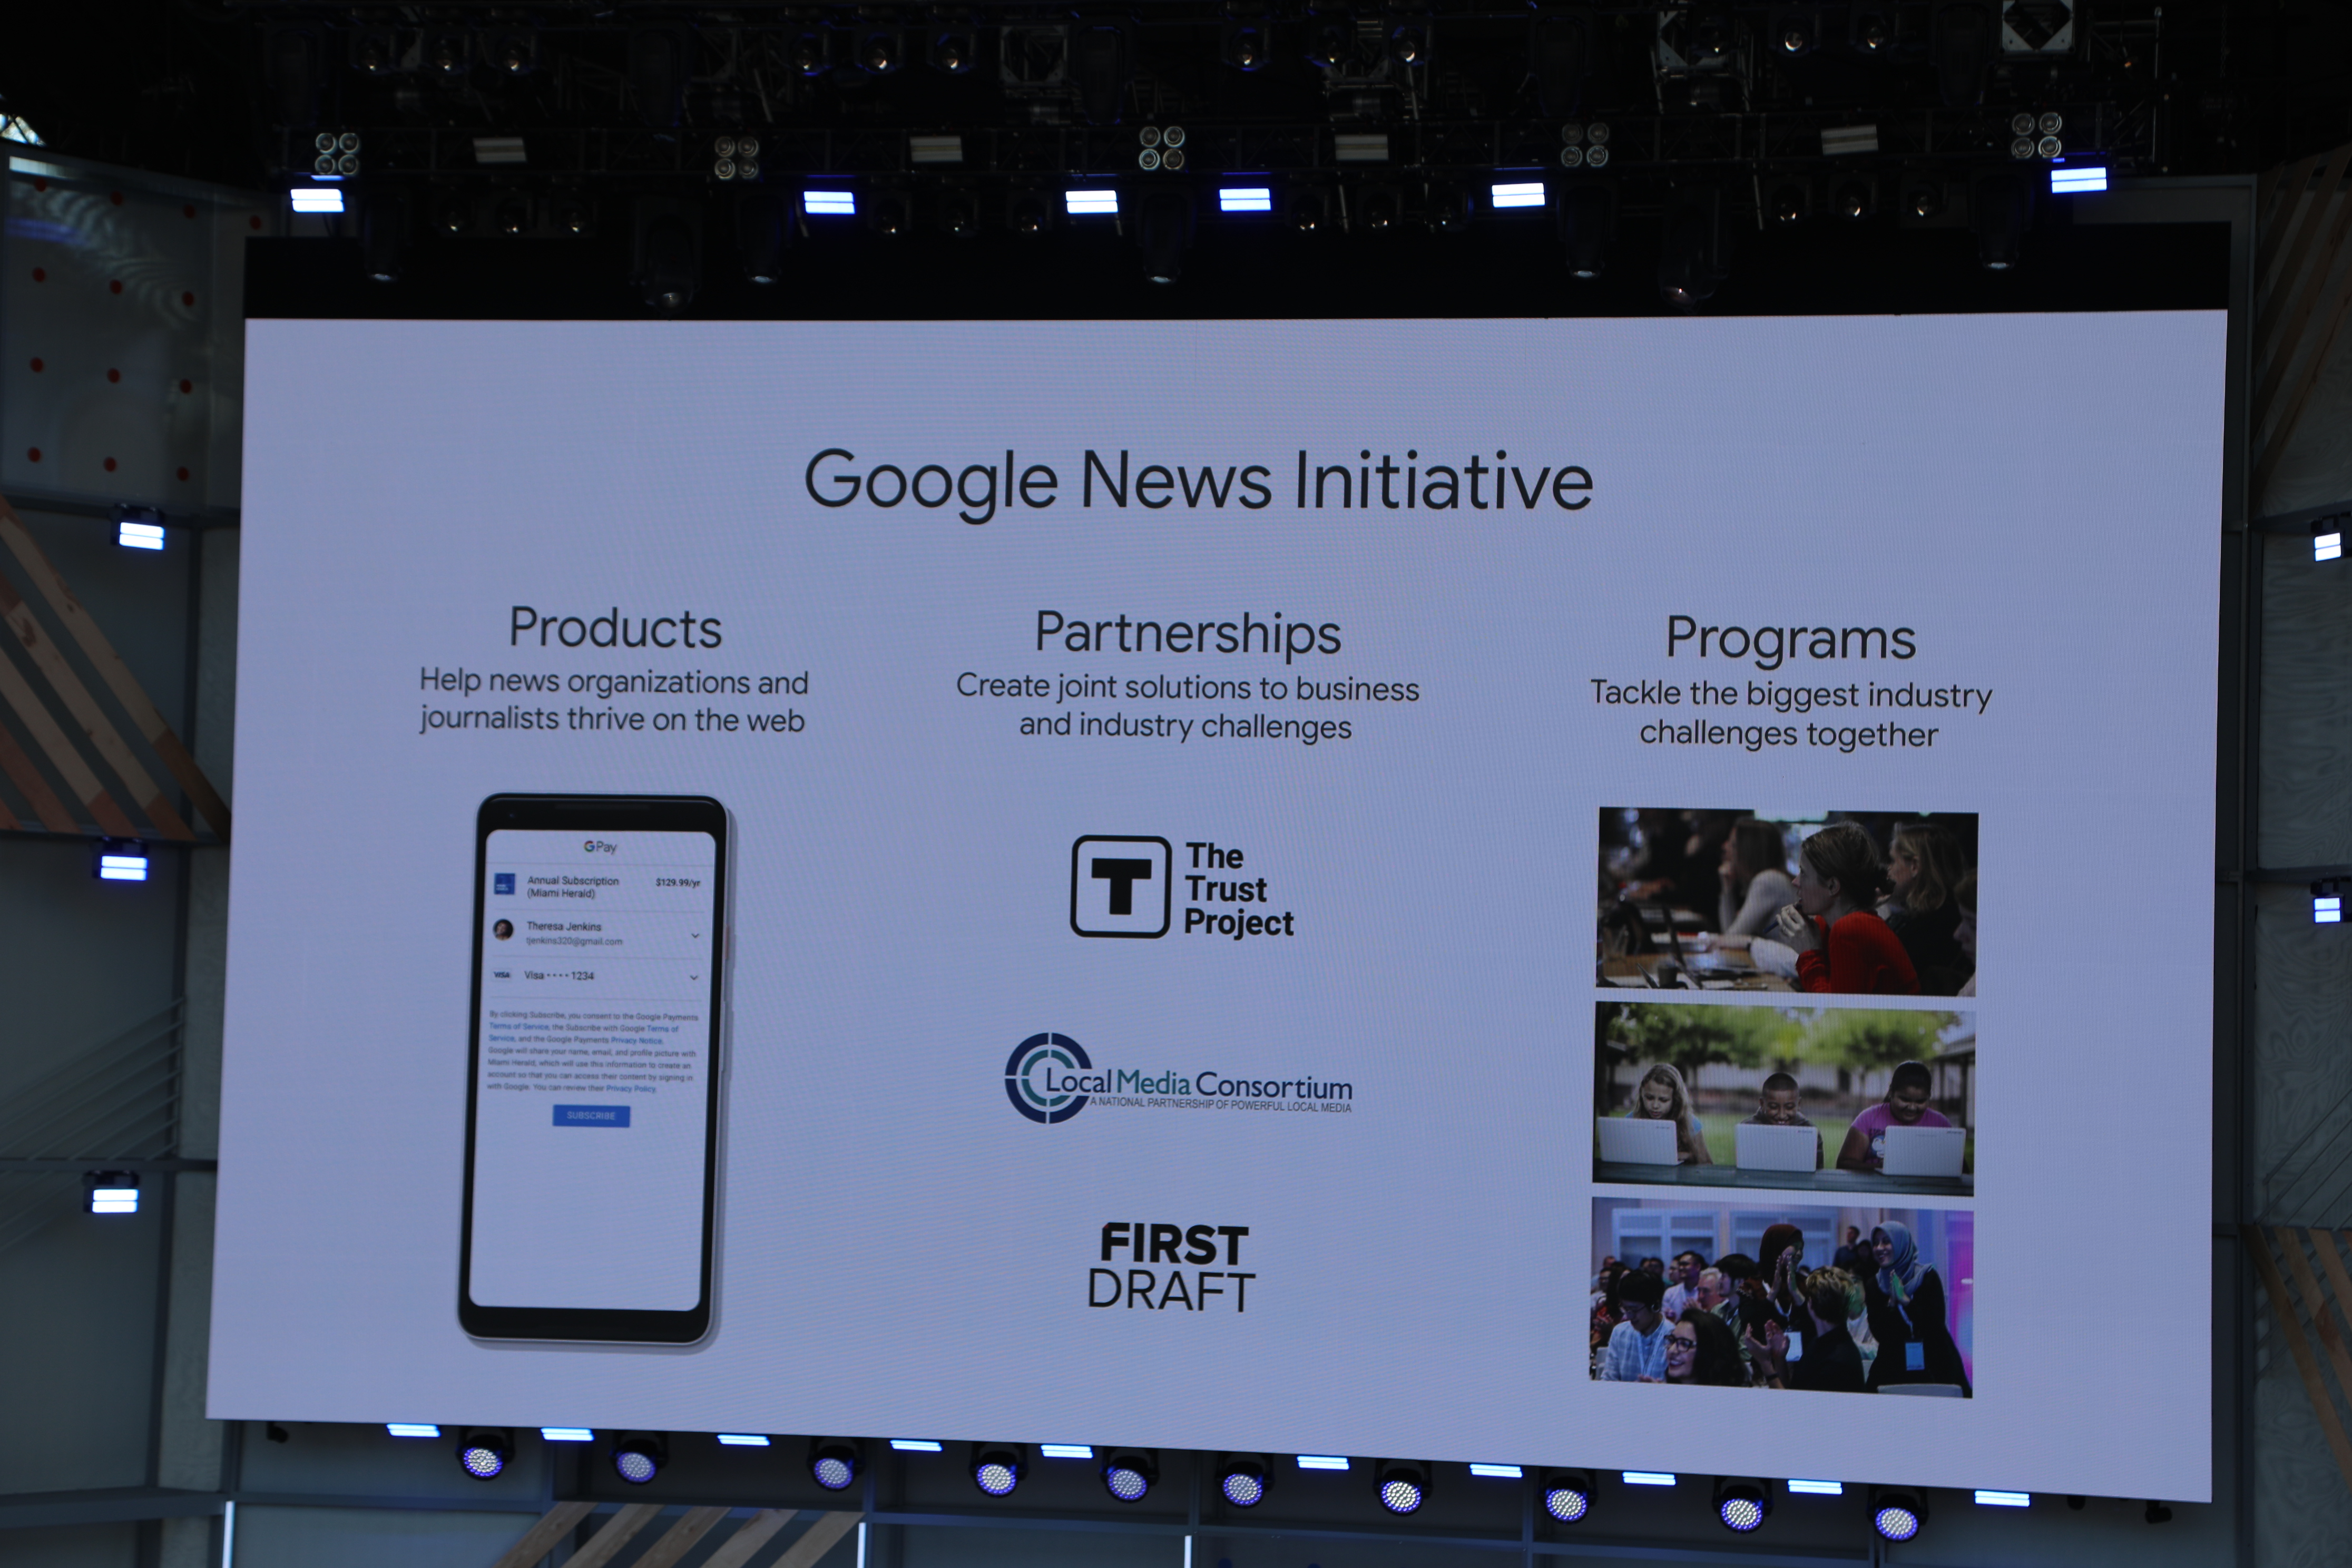 8 big announcements from Google I/O 2018 | TechCrunch